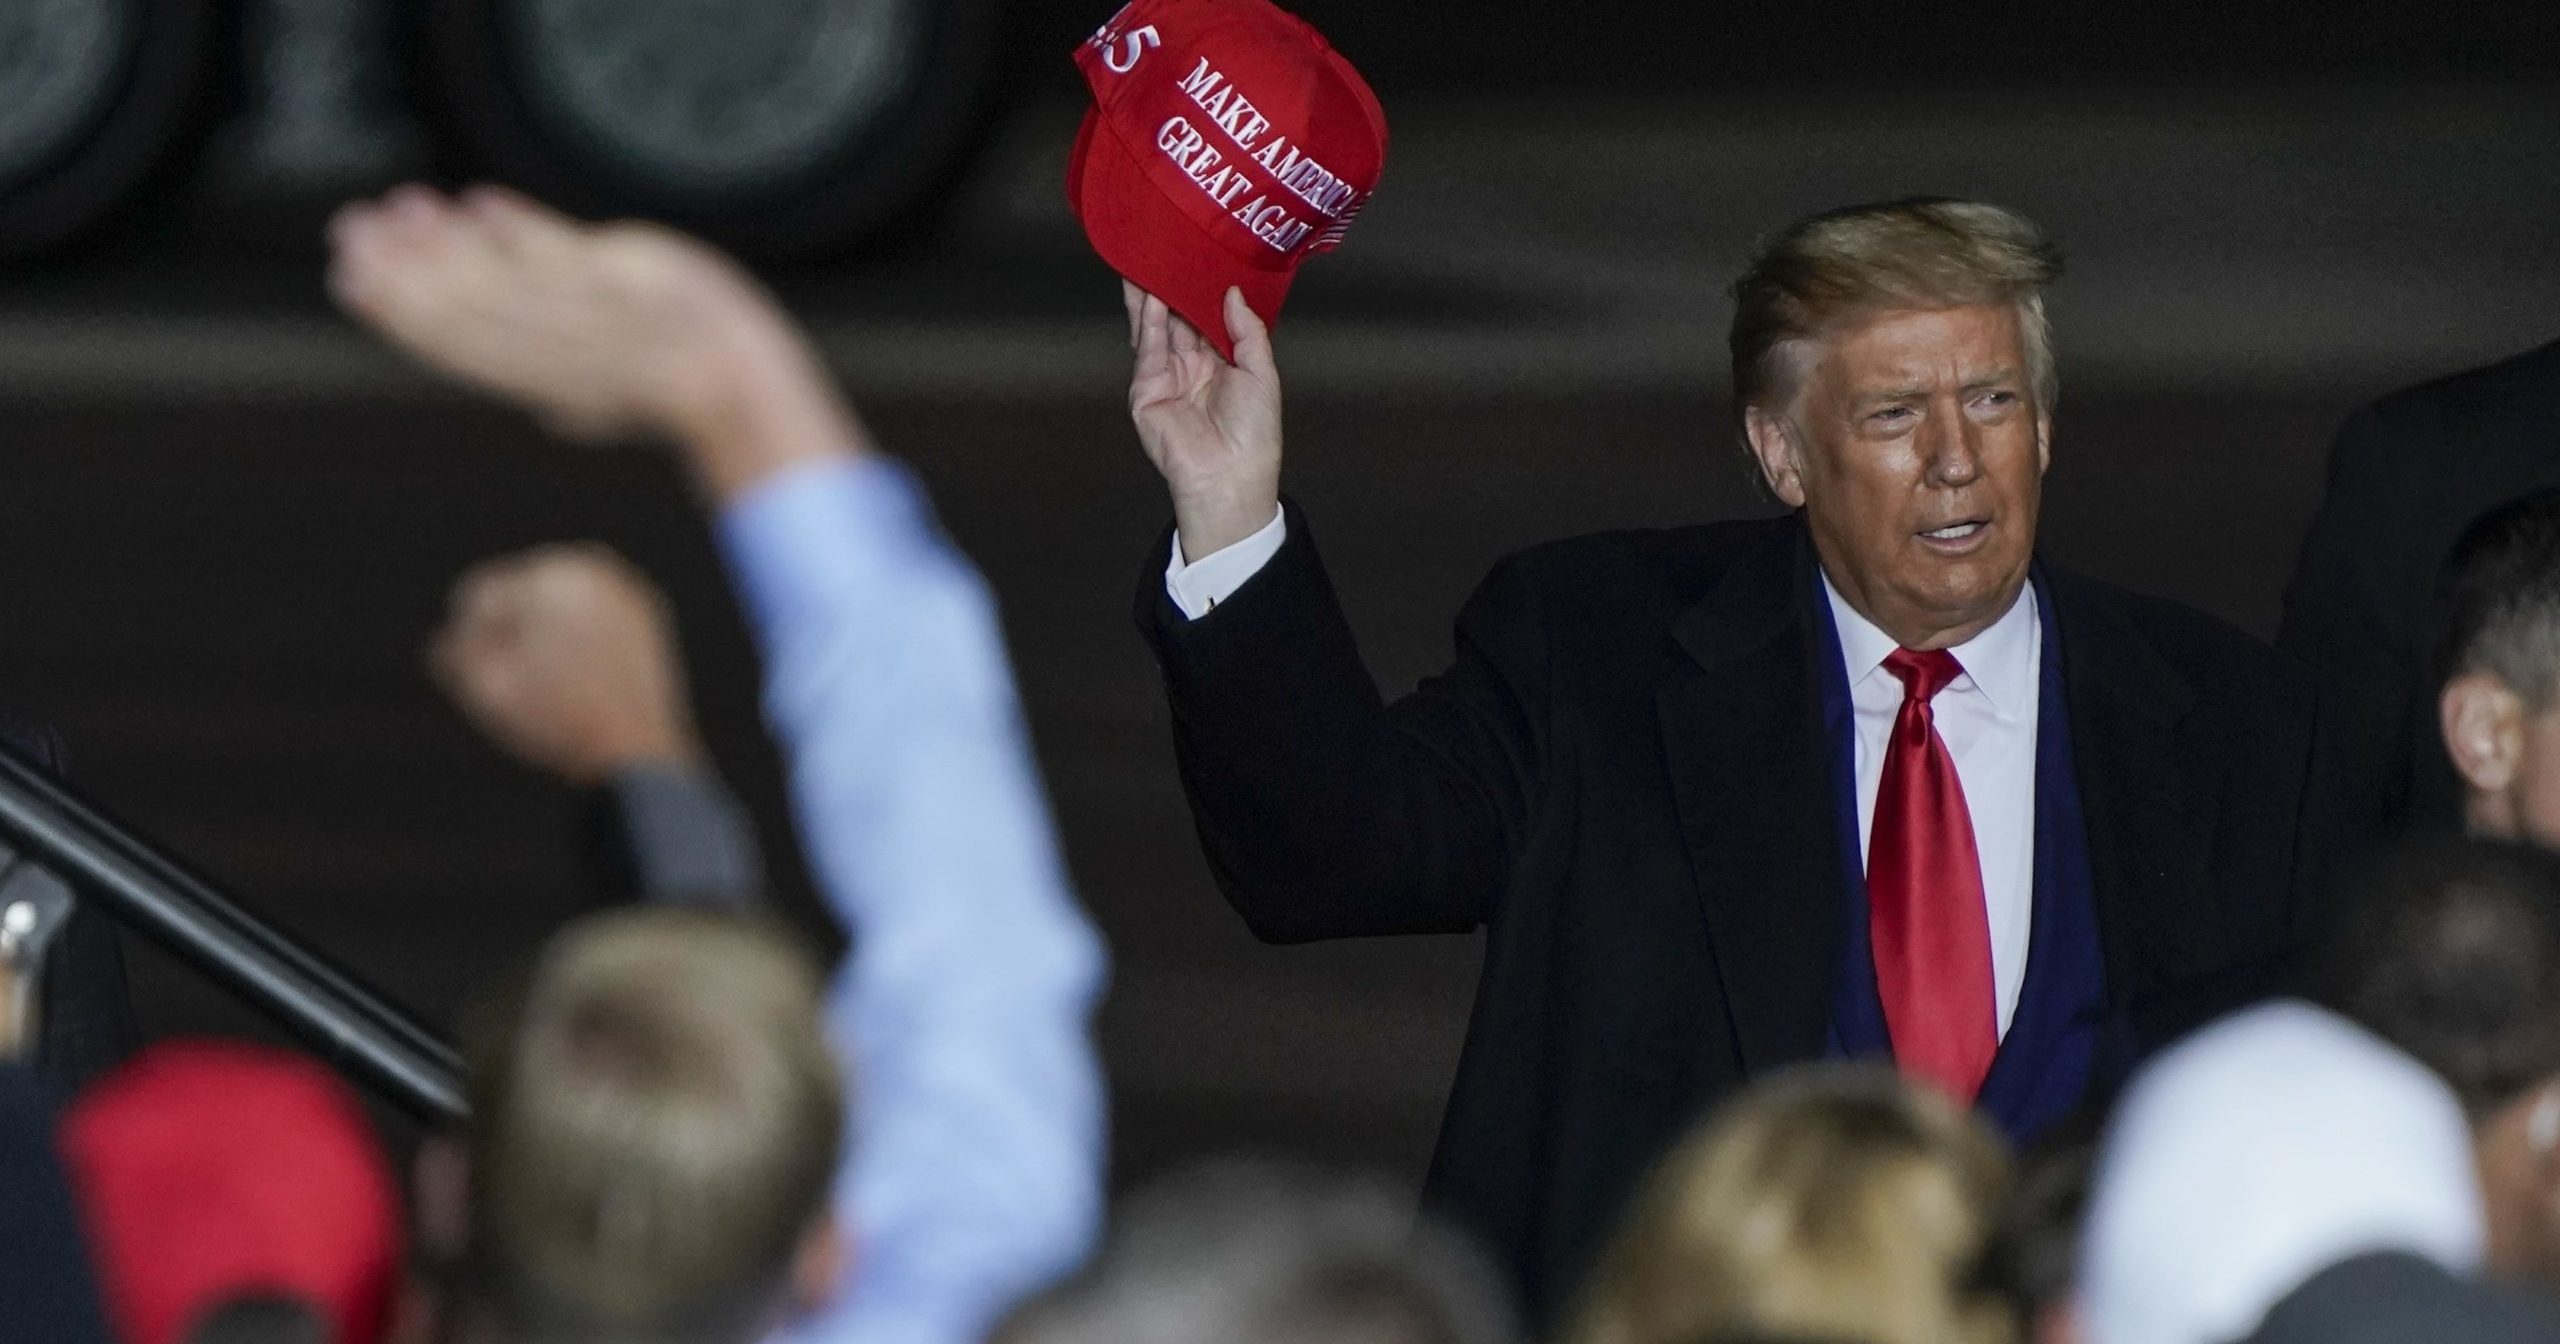 President Donald Trump throws a hat to the crowd after speaking at a campaign rally at the Central Wisconsin Airport in Mosinee, Wisconsin, on Sept. 17.